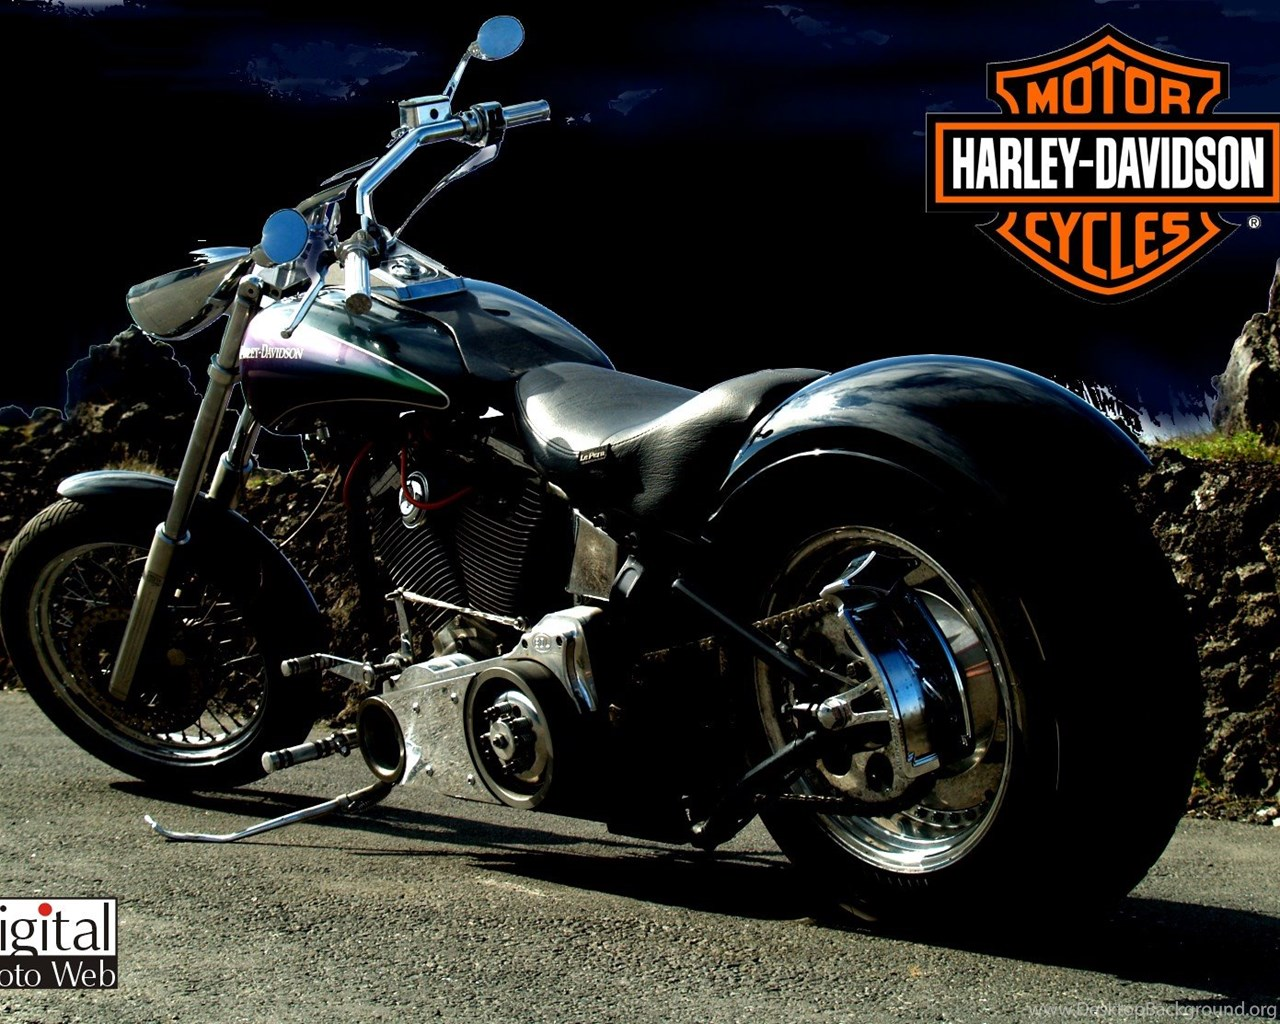 gambar gambar motor harley davidson desktop background. Black Bedroom Furniture Sets. Home Design Ideas